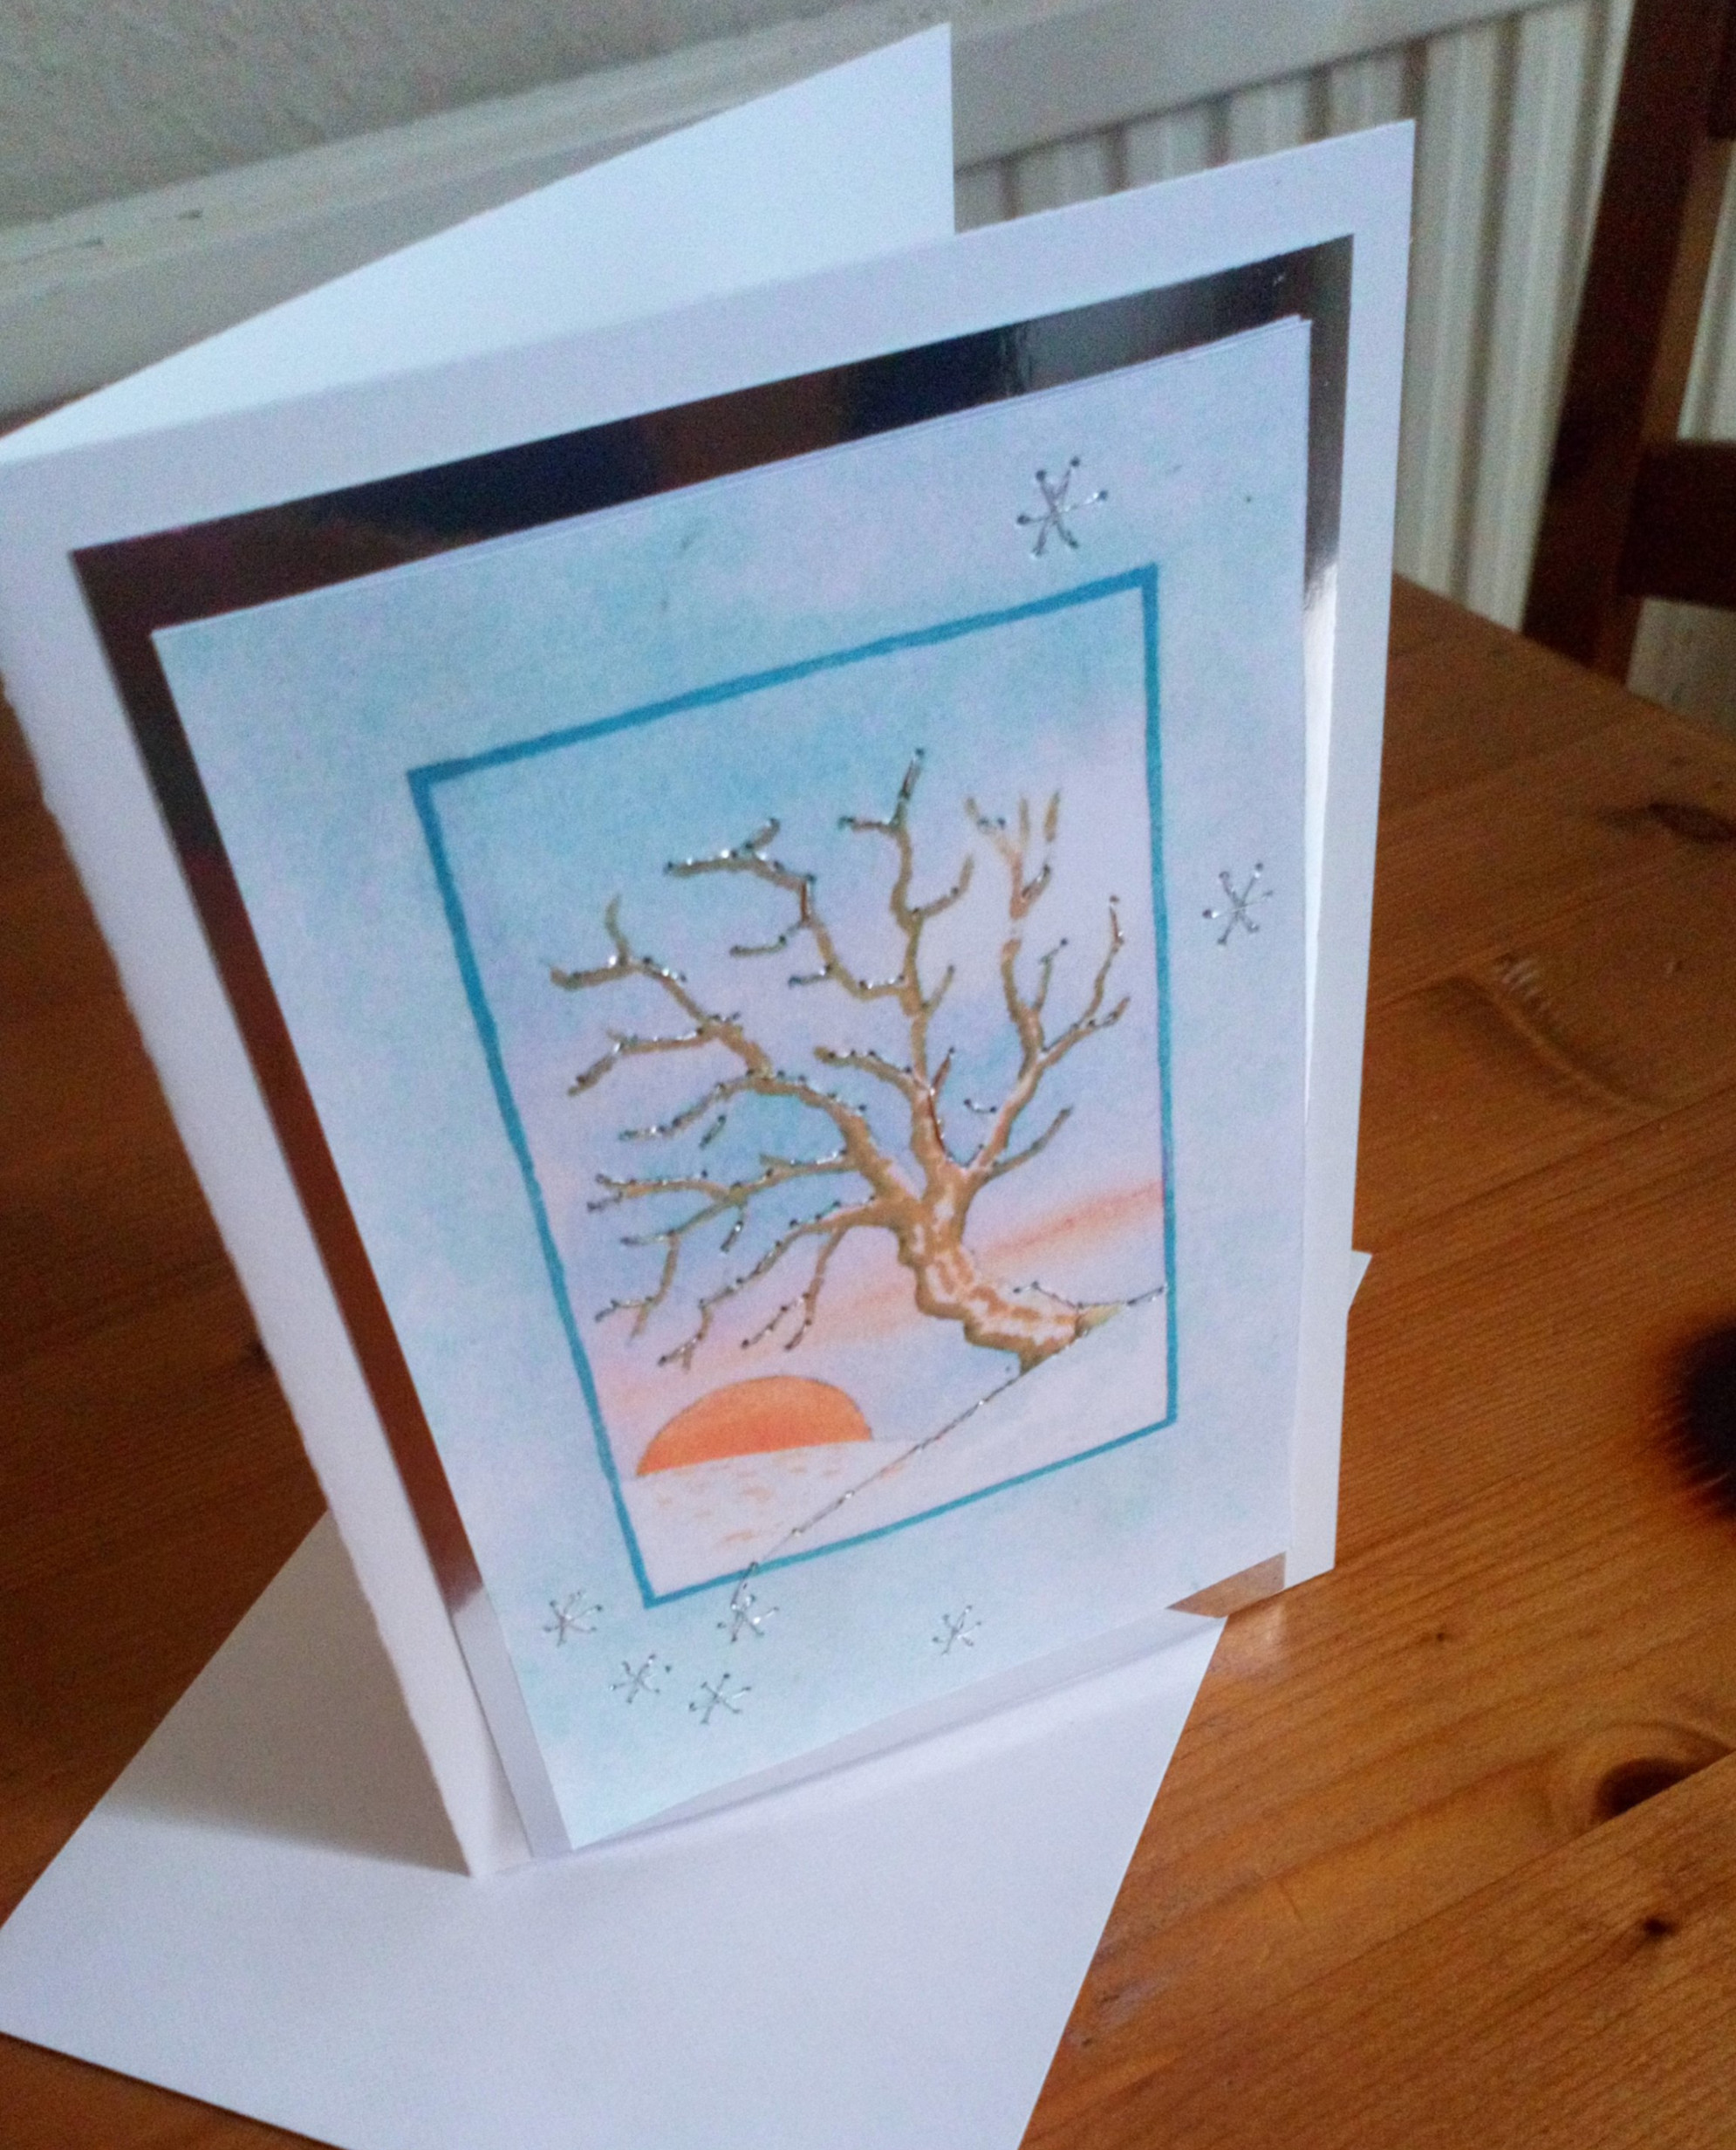 Linda generously helped people living with dementia and their families to make beautiful sparkling cards on 9th June 2020.